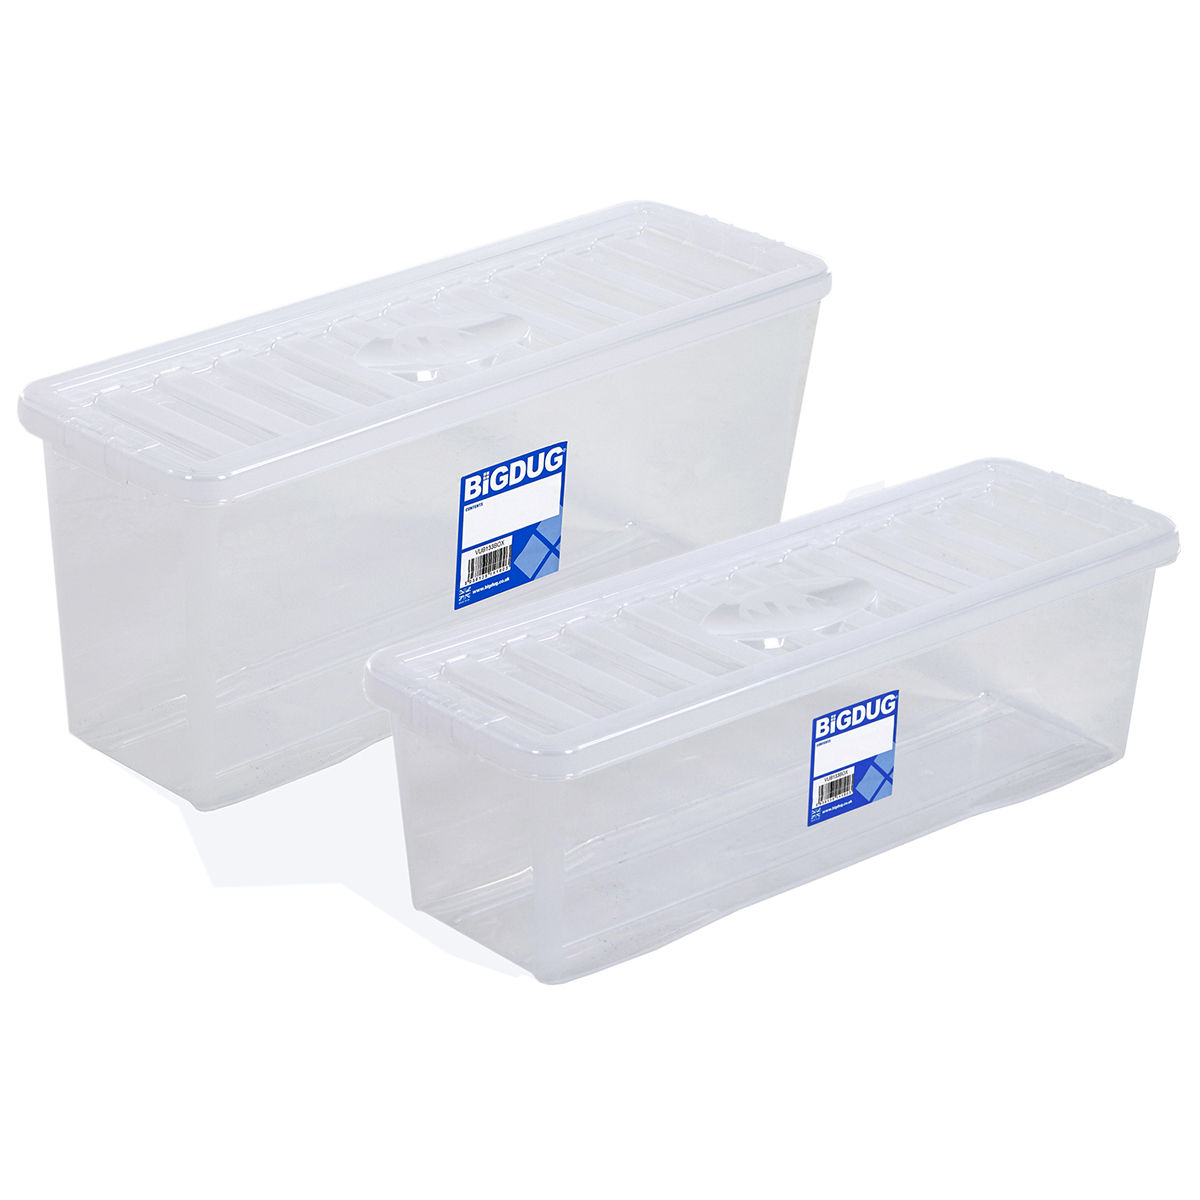 plastic cd dvd storage boxes box clear storage containers